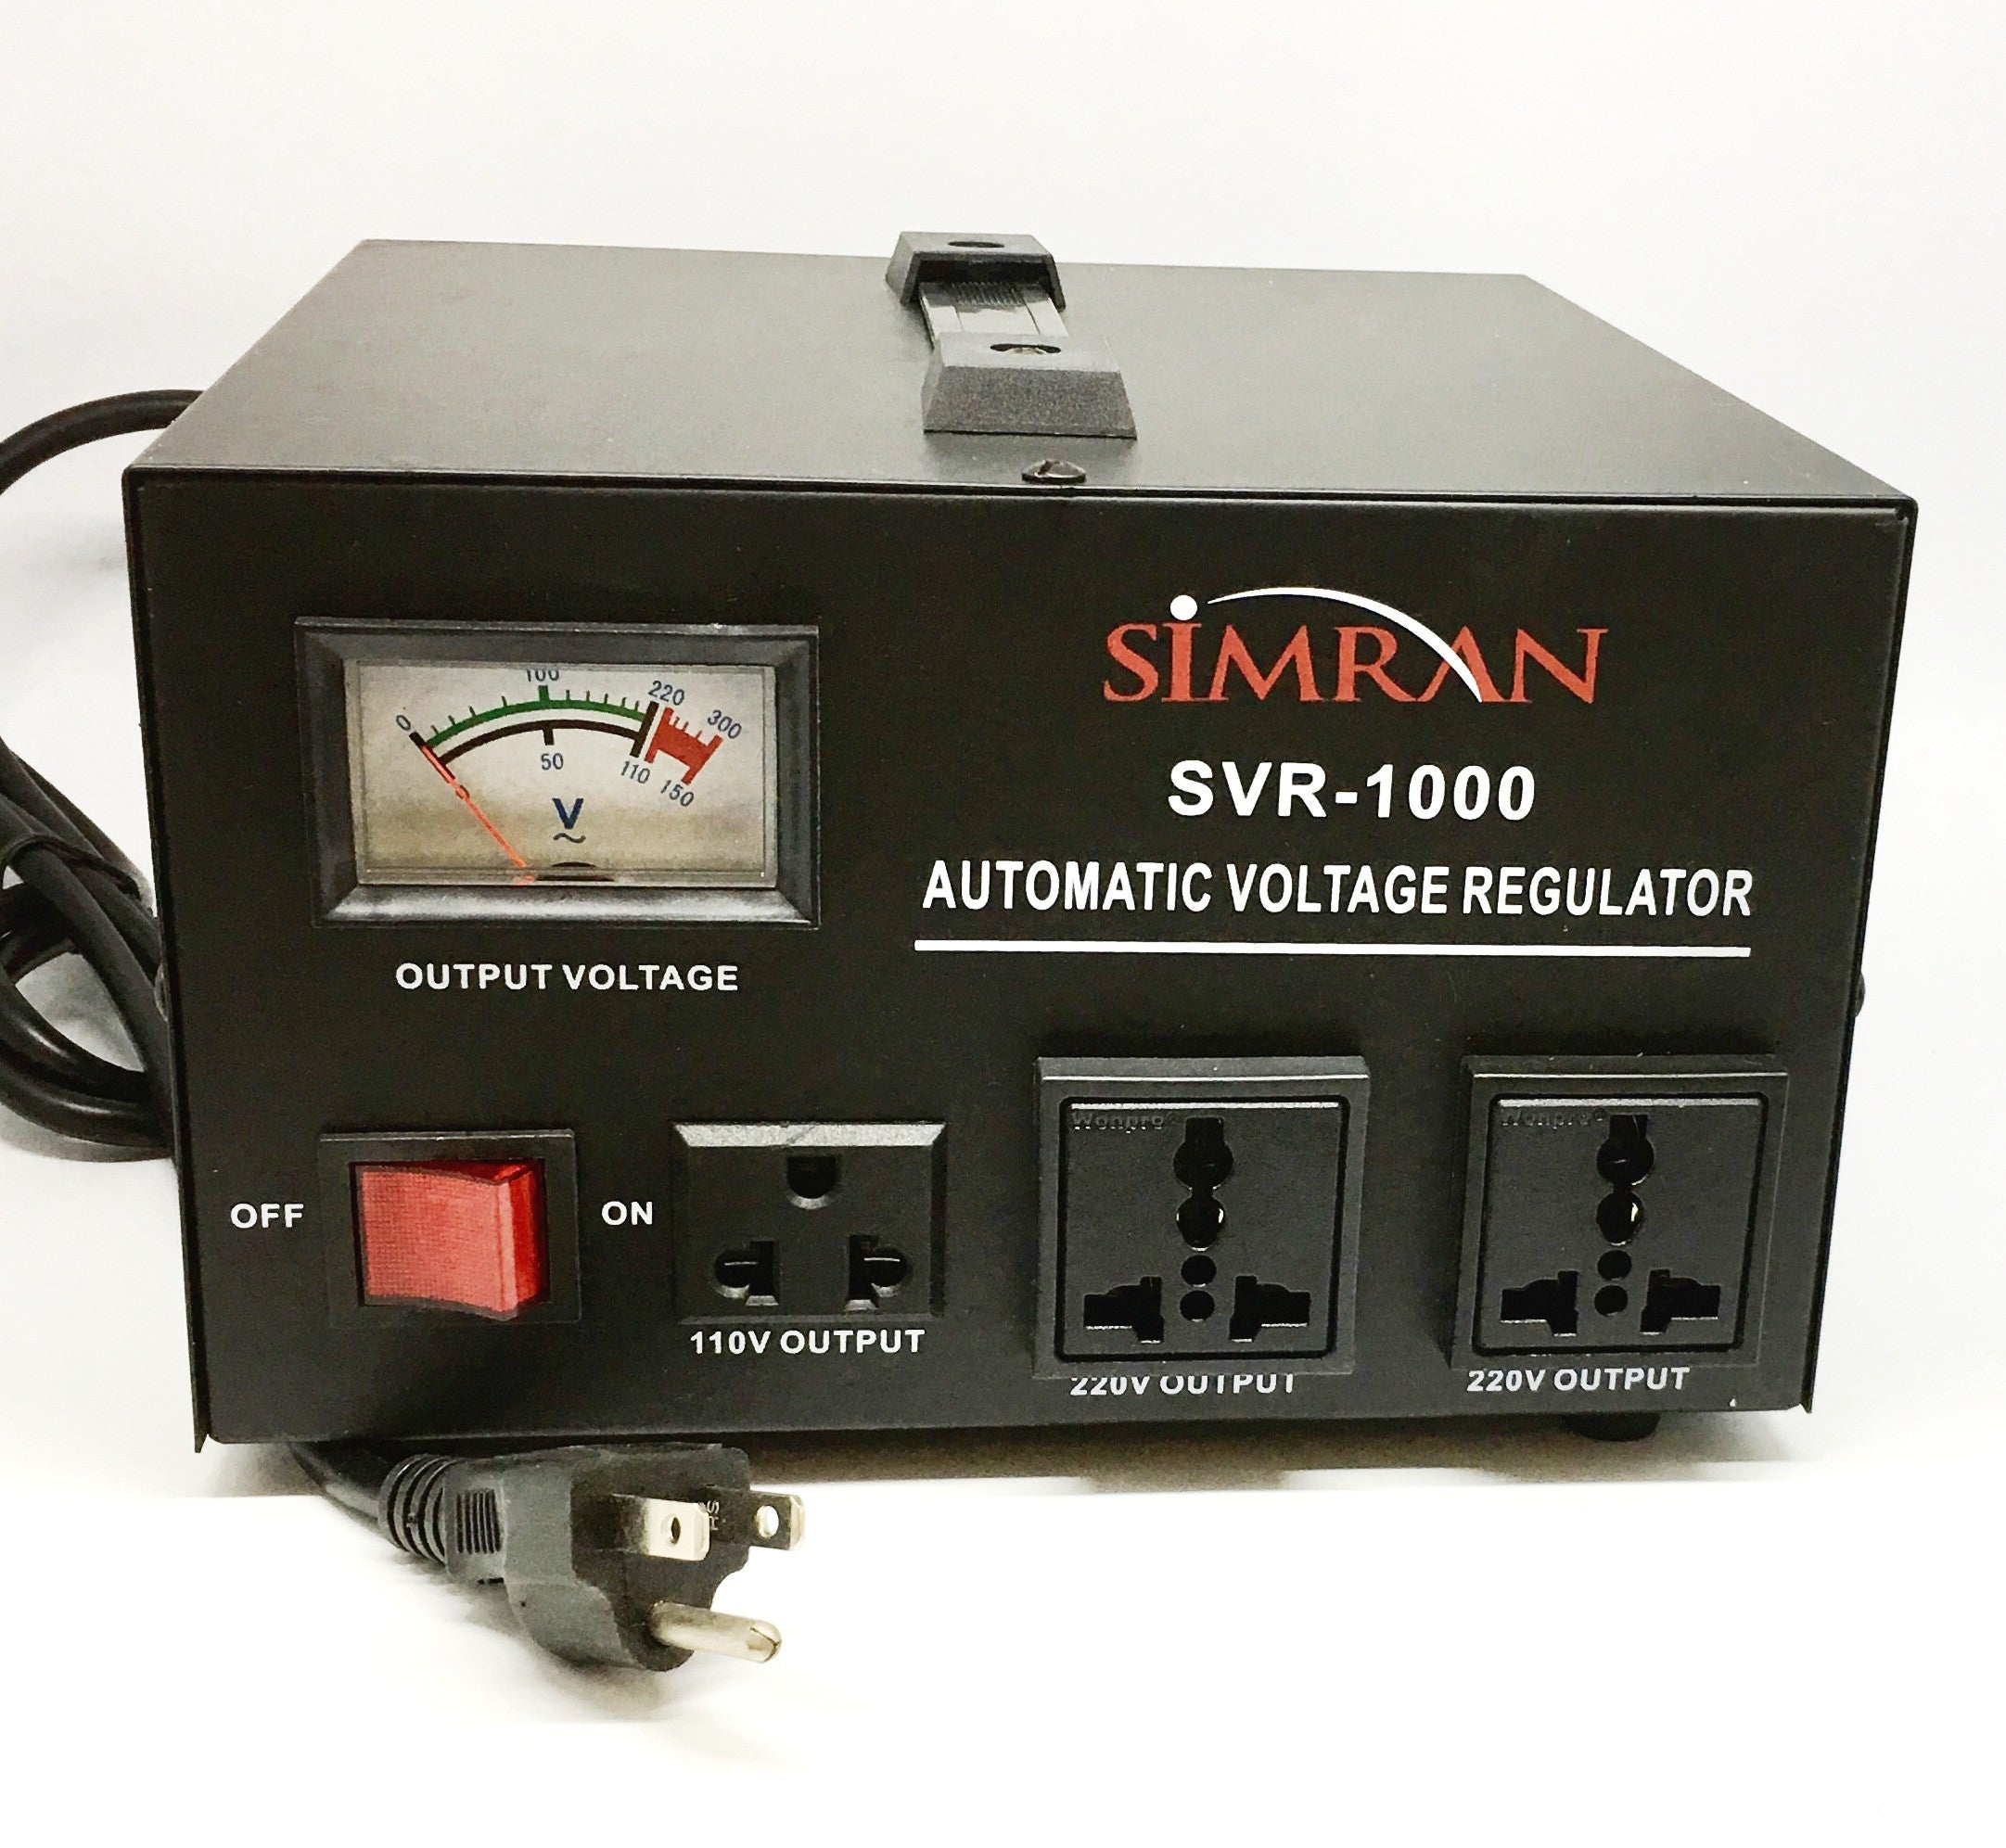 Https Daily Voltage Power 110 220 Volts Dual 5060hz 20 Amps Svr 1000 5v1496783633